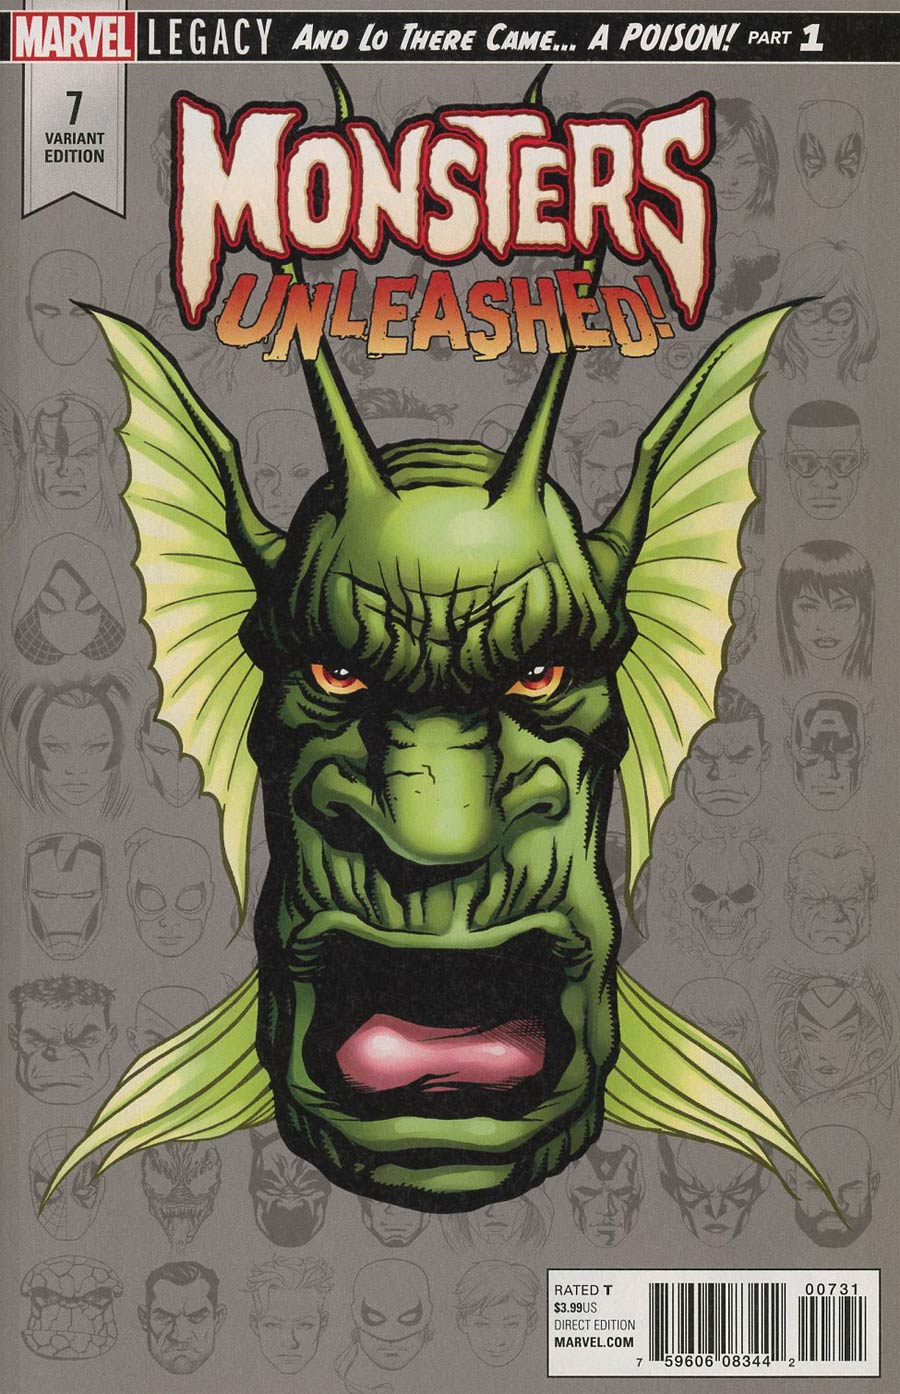 Monsters Unleashed Vol 2 #7 Cover C Incentive Mike McKone Legacy Headshot Variant Cover (Marvel Legacy Tie-In)